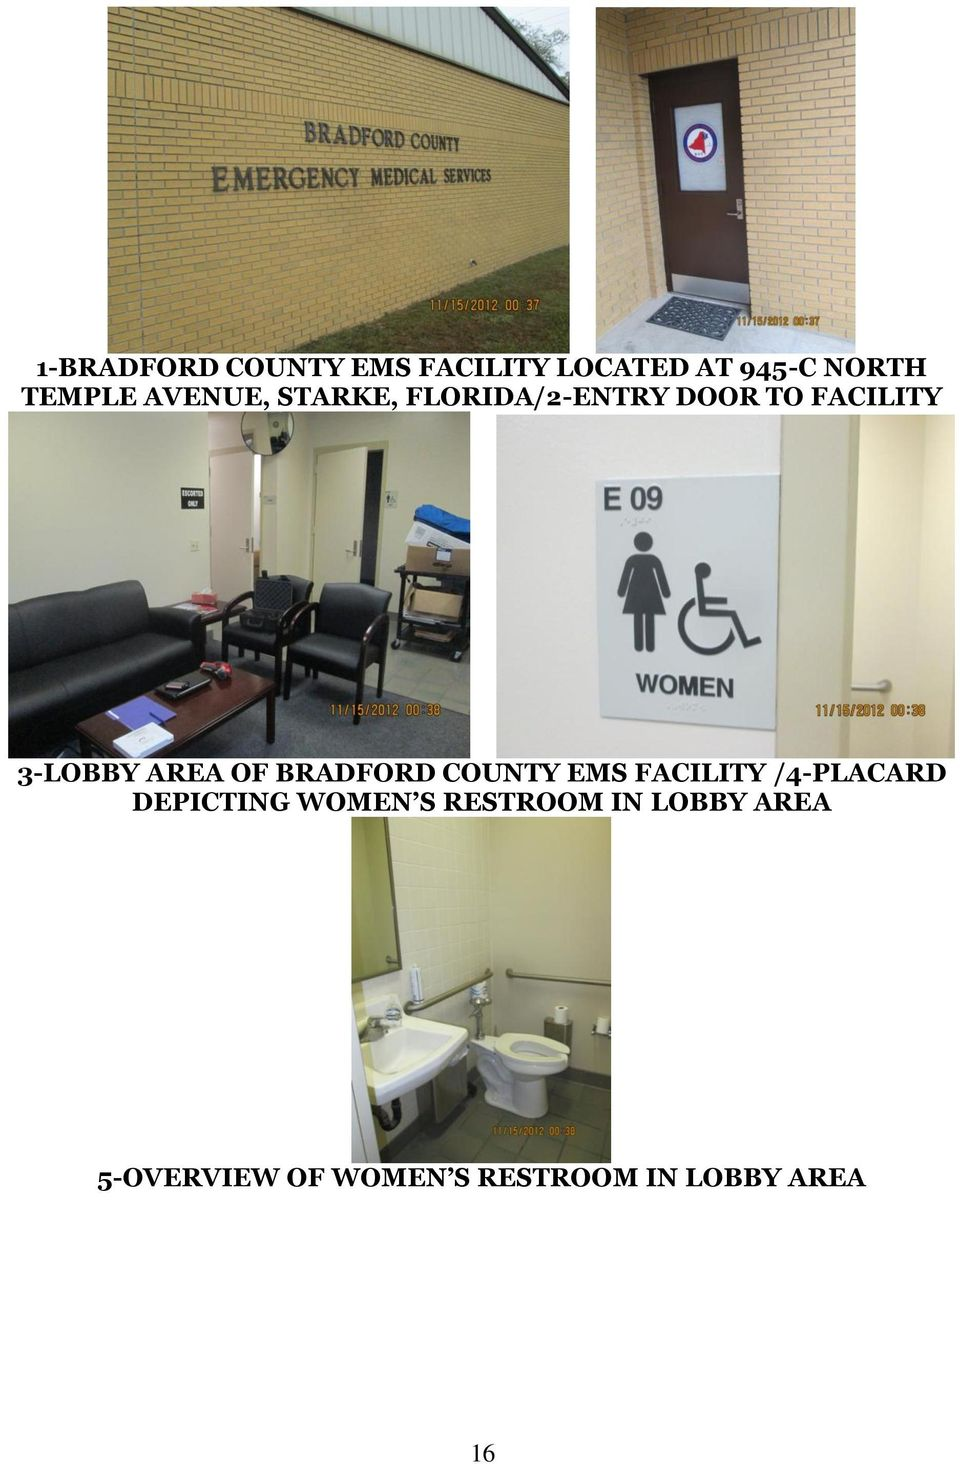 OF BRADFORD COUNTY EMS FACILITY /4-PLACARD DEPICTING WOMEN S